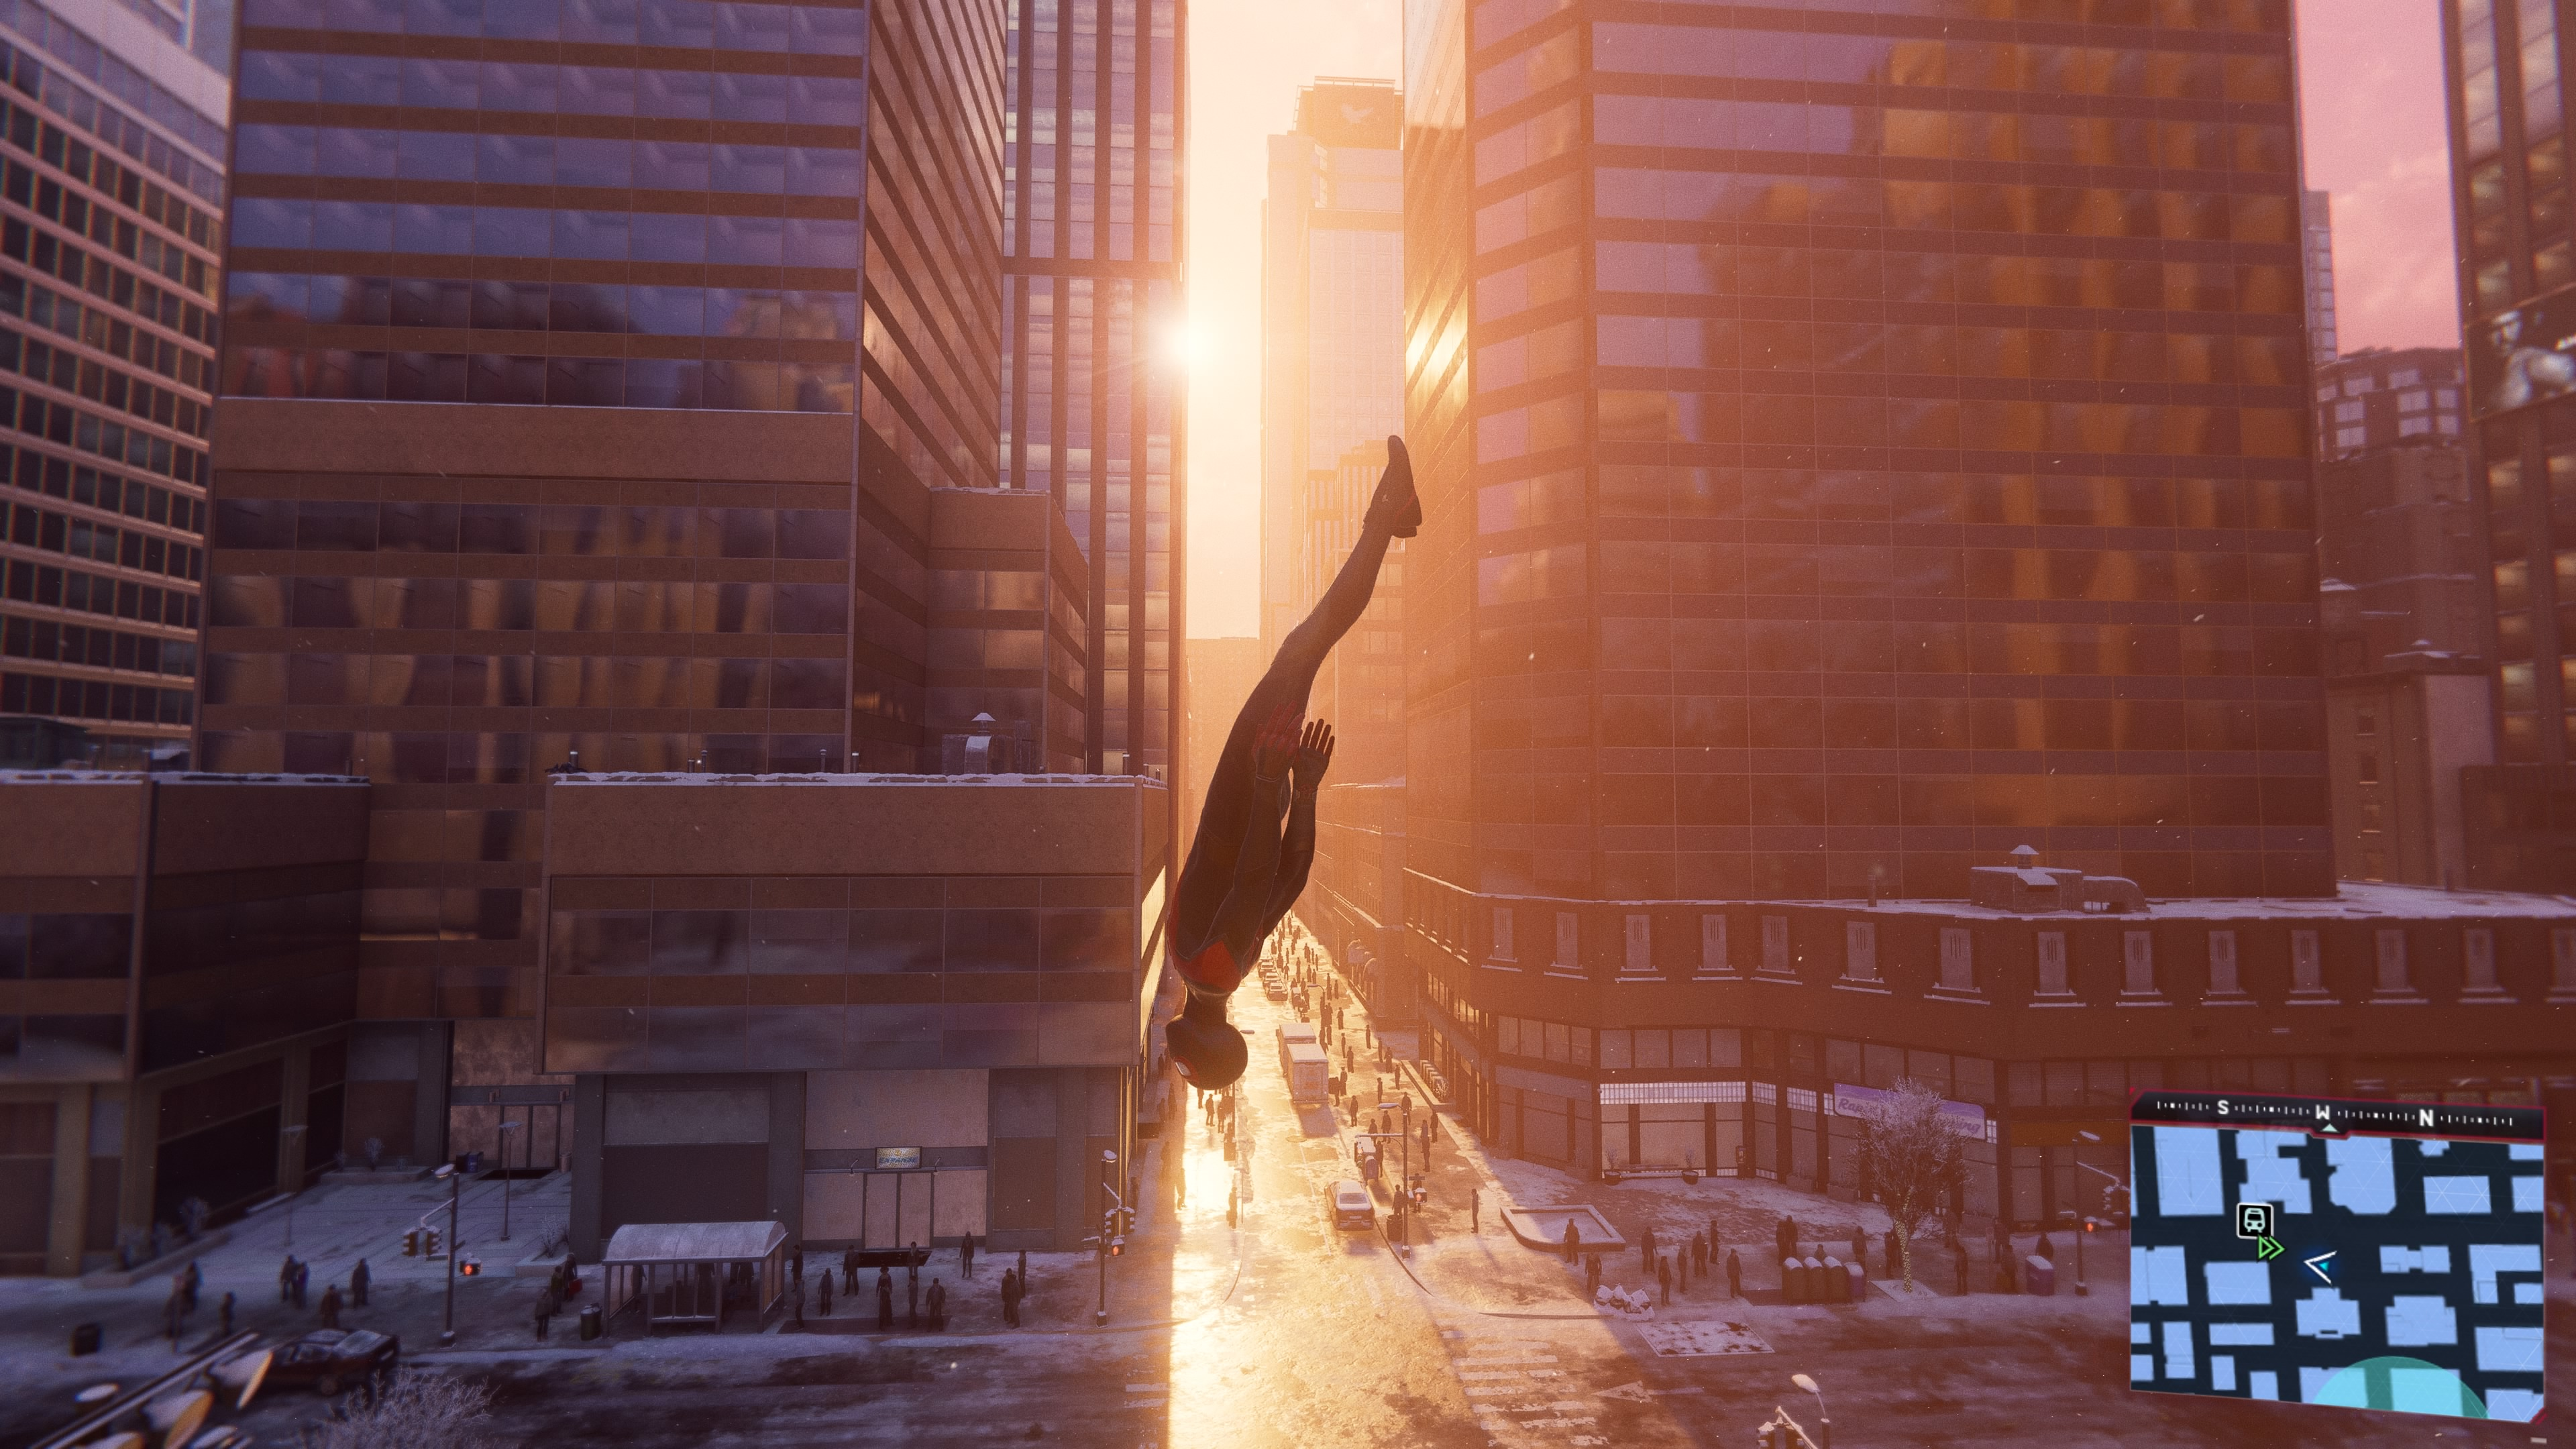 Spider-Man diving toward the ground with the sun behind him in Spider-Man: Miles Morales on PS5